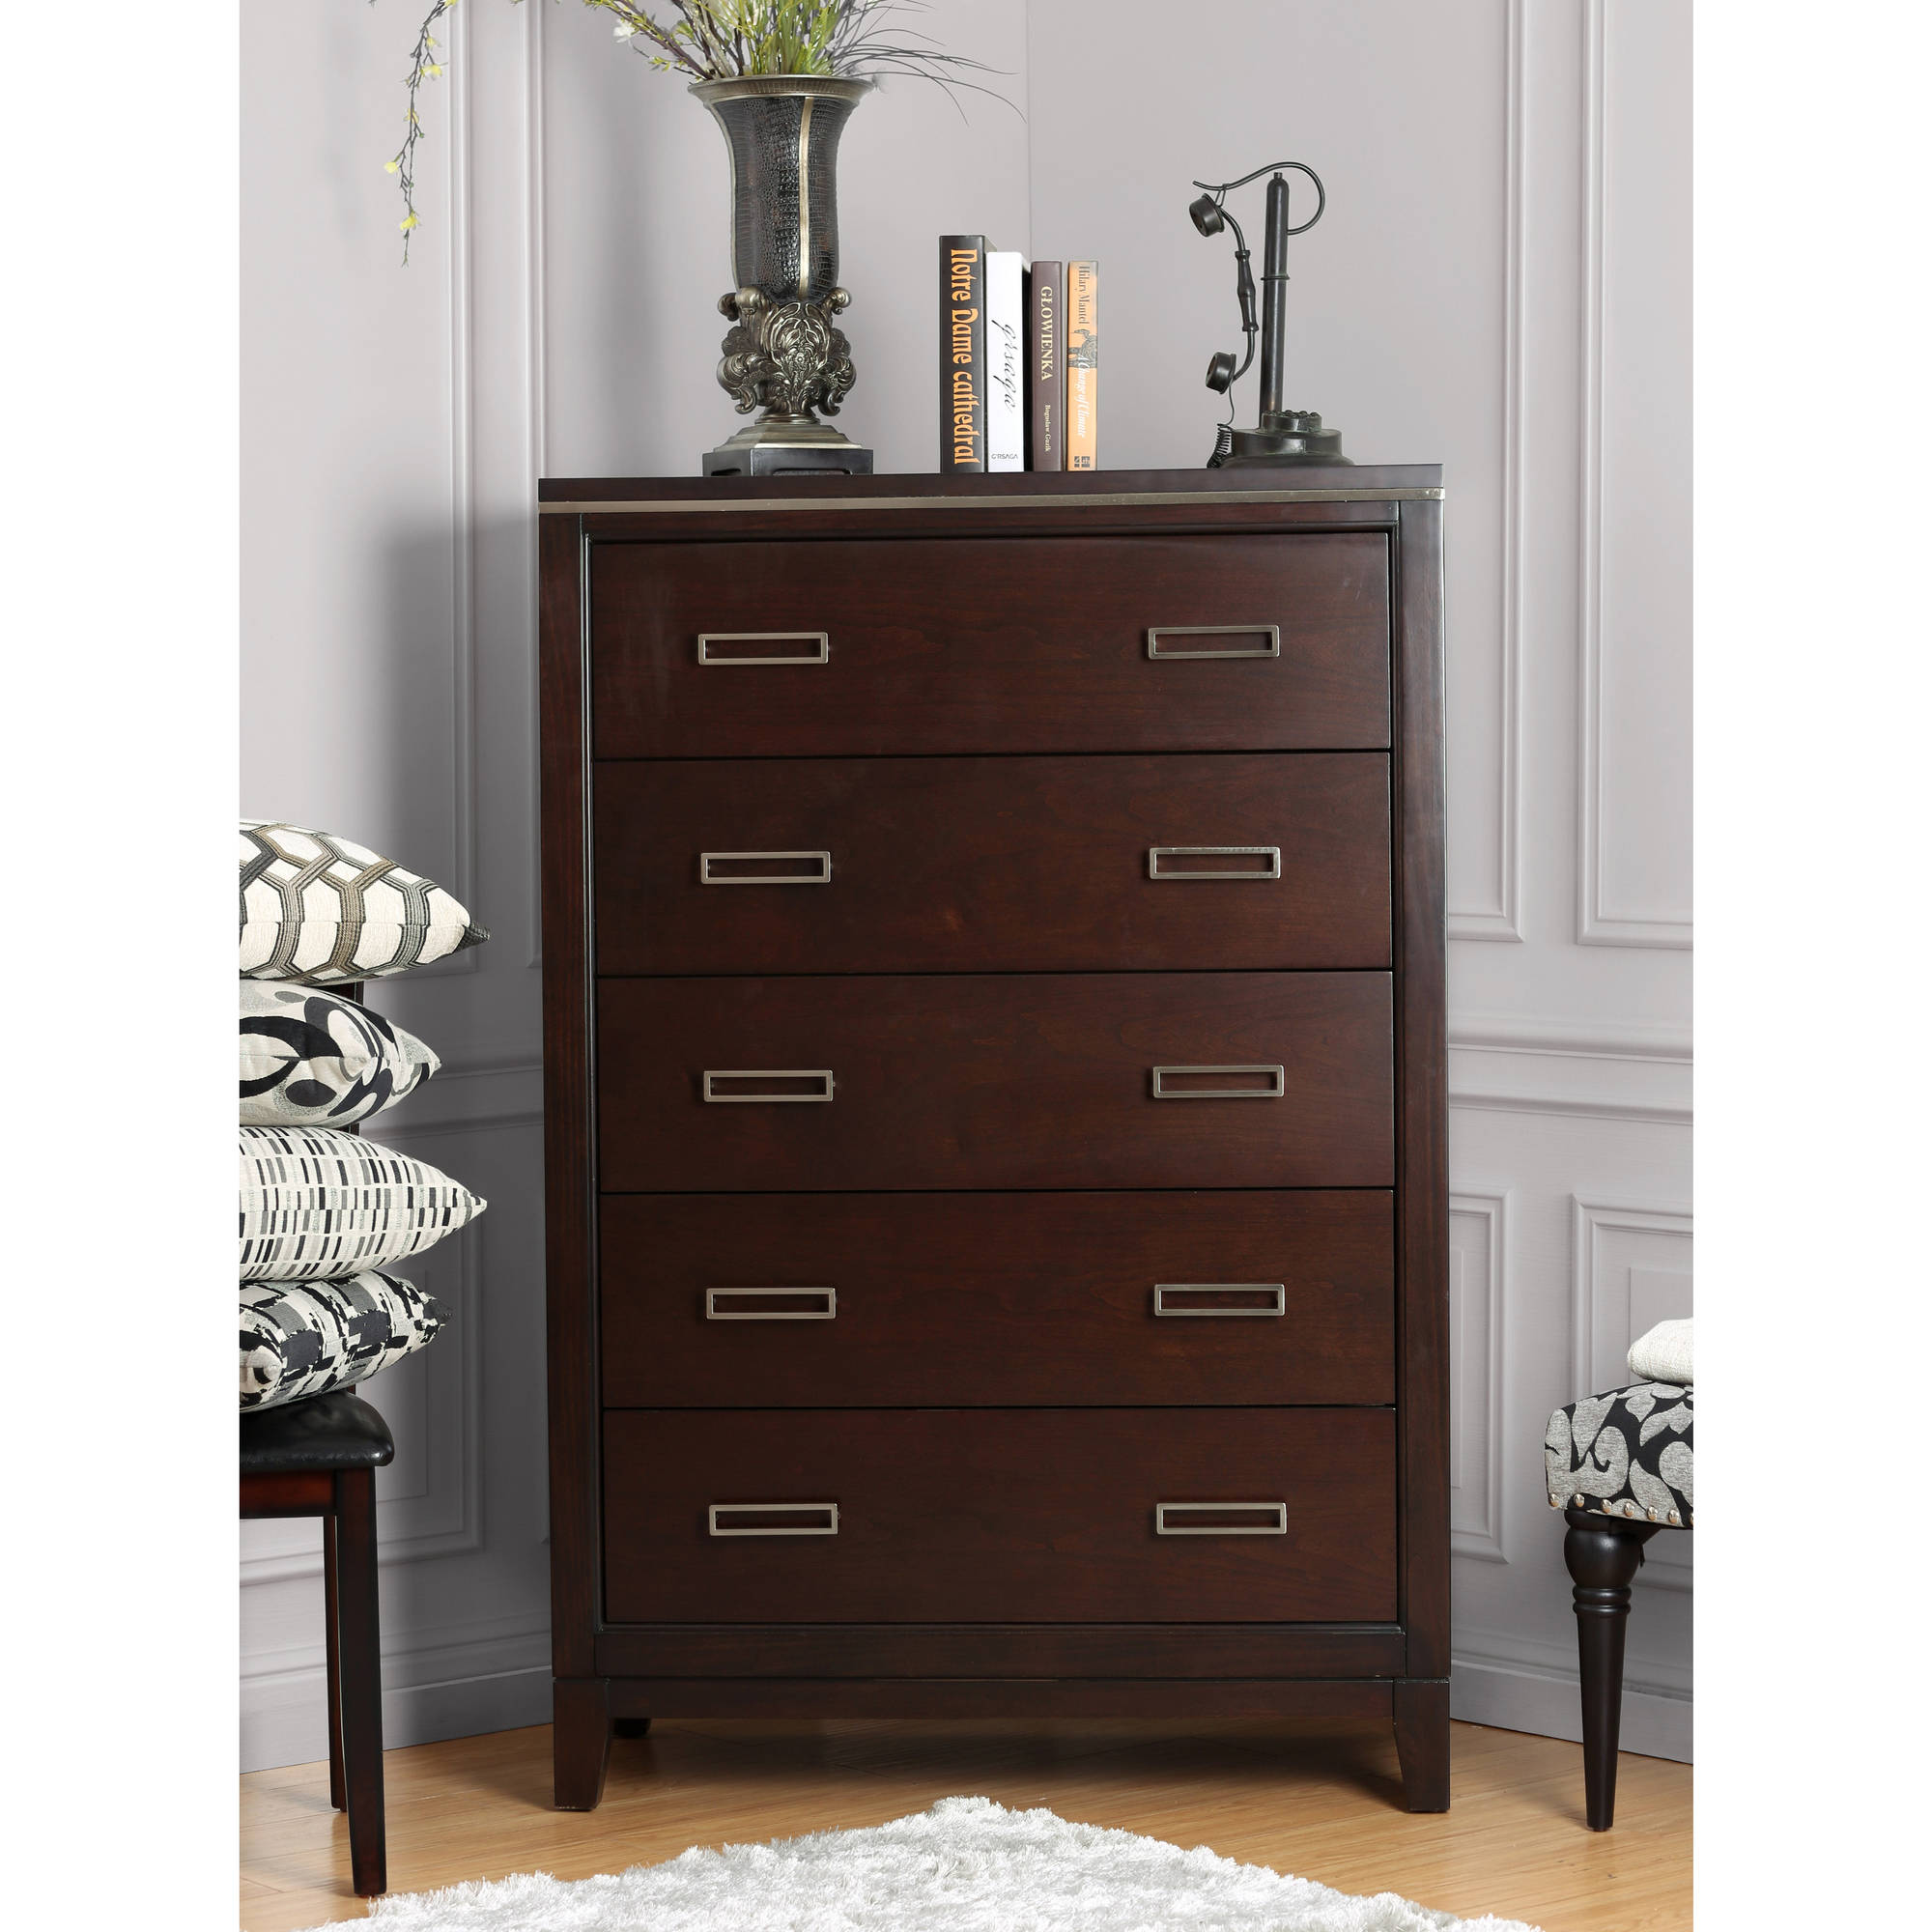 Furniture of America Paloma Contemporary Chest, Cherry